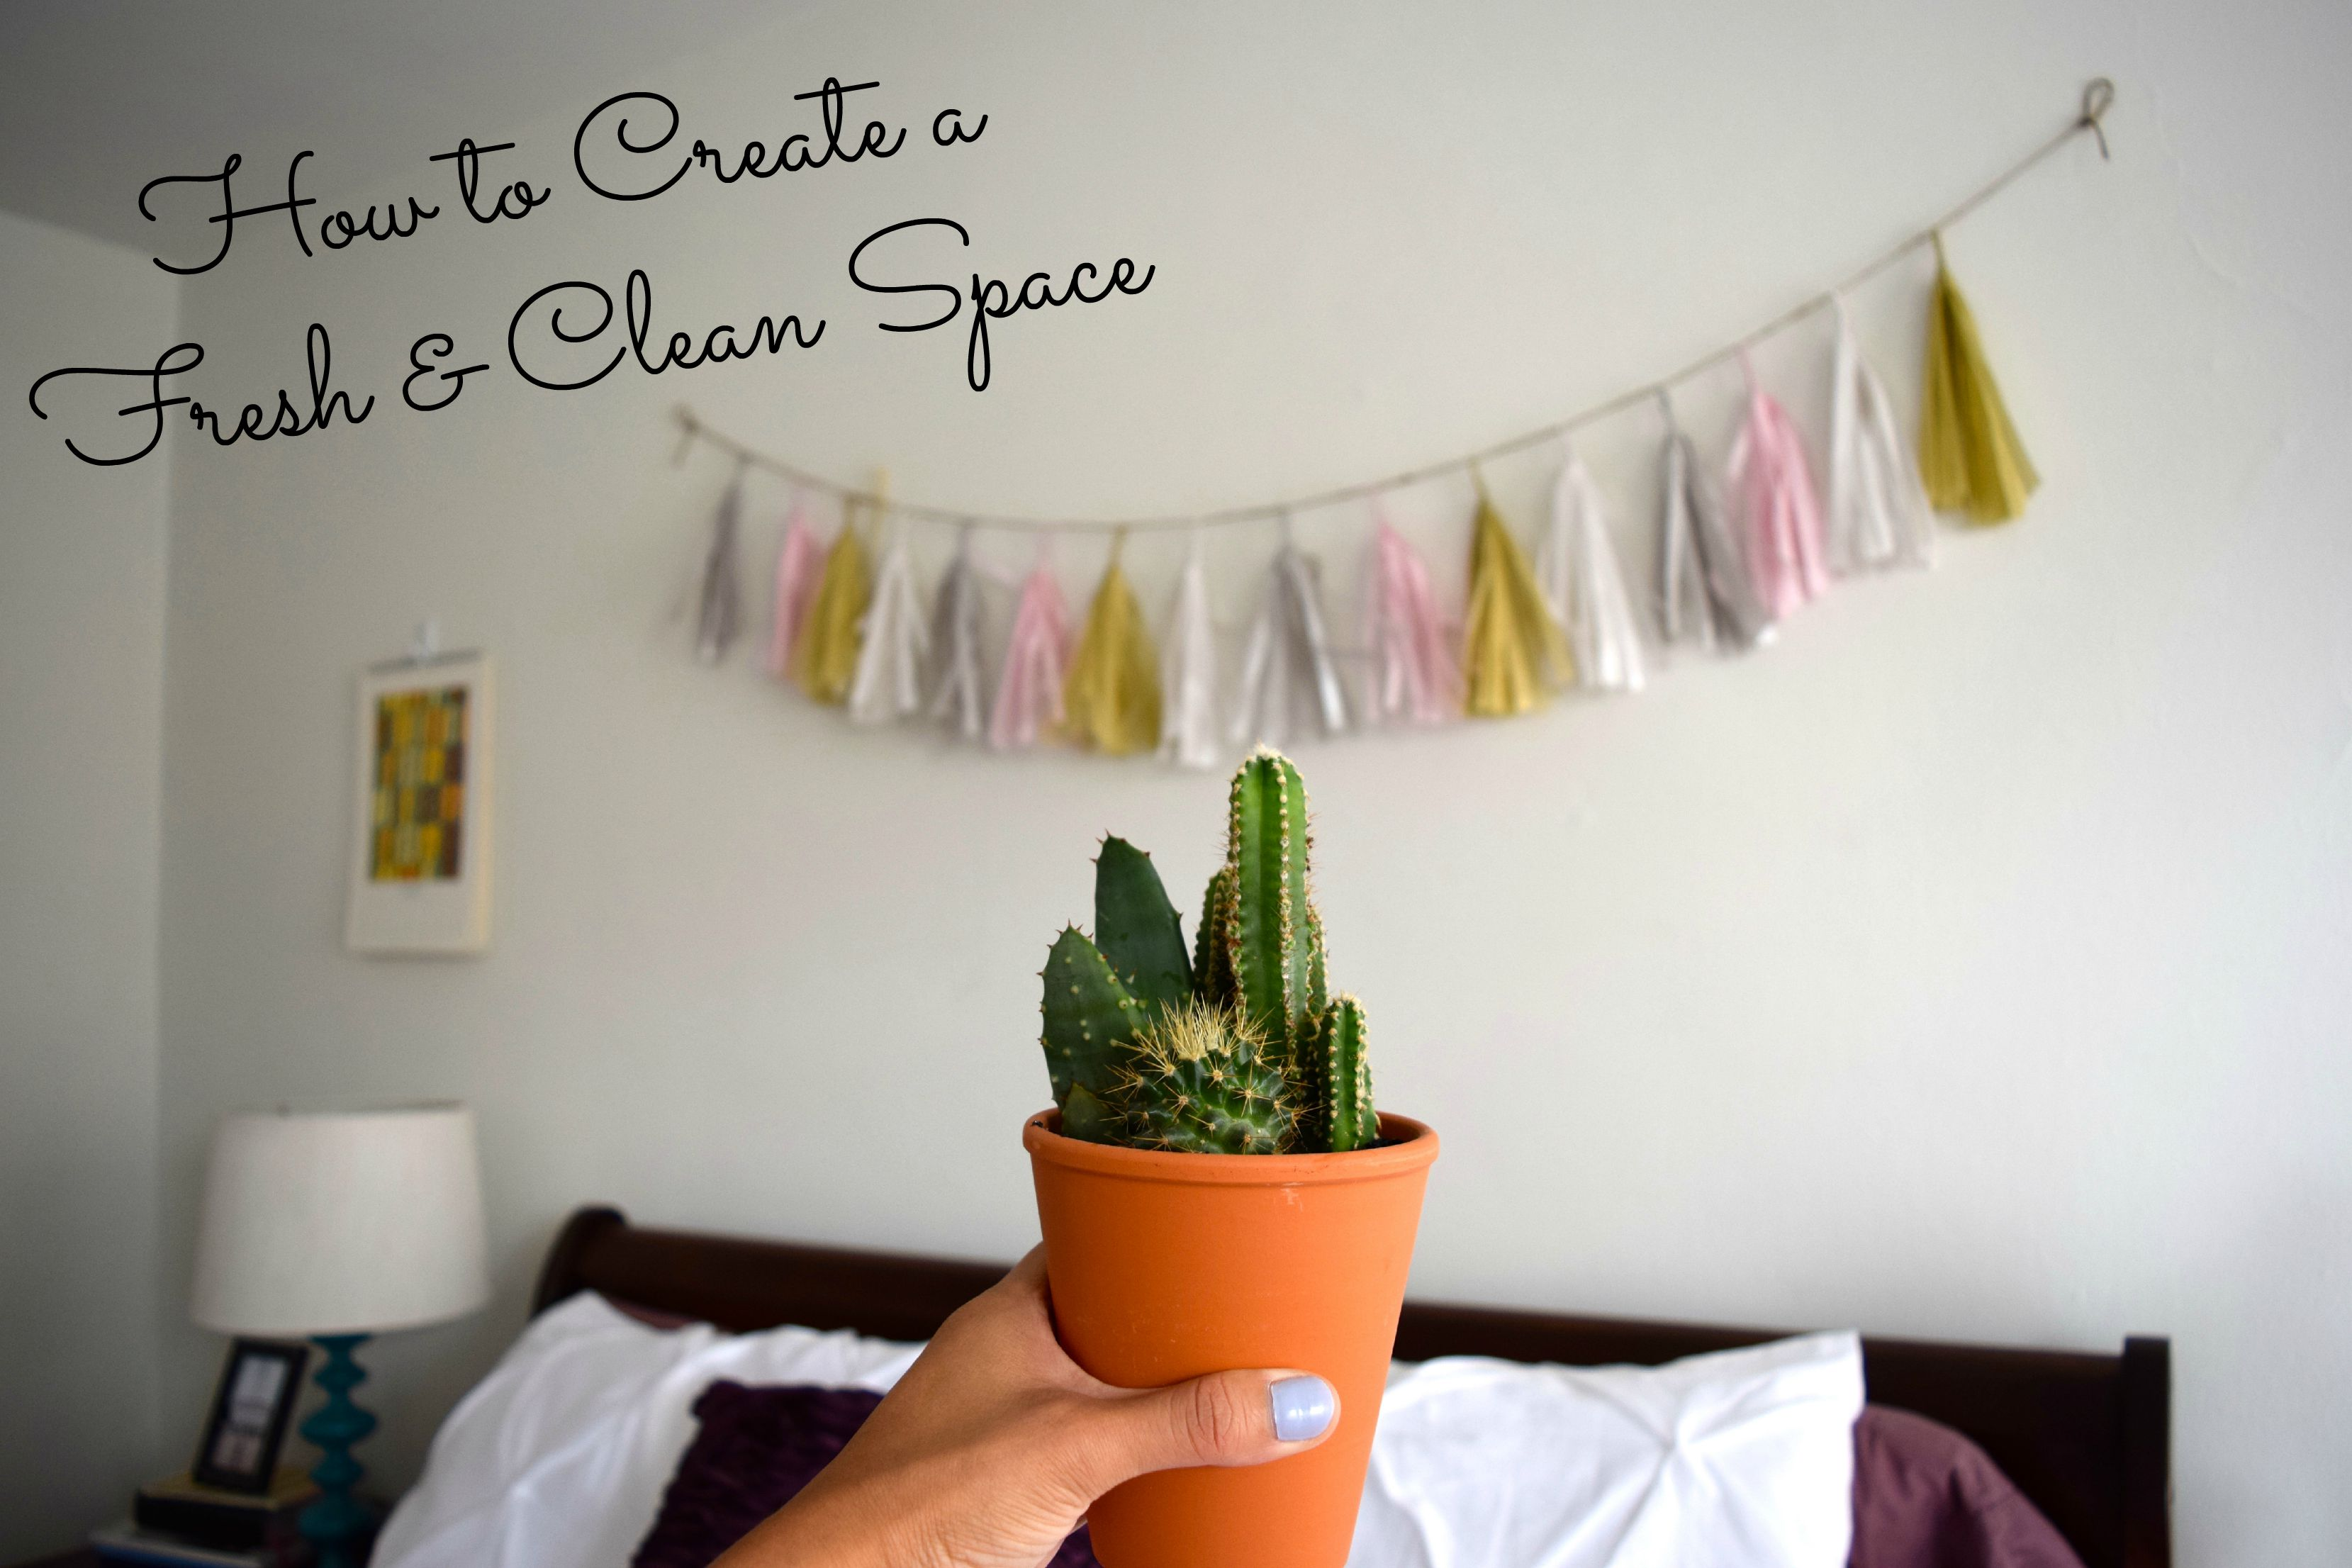 How to Create a Fresh & Clean Space